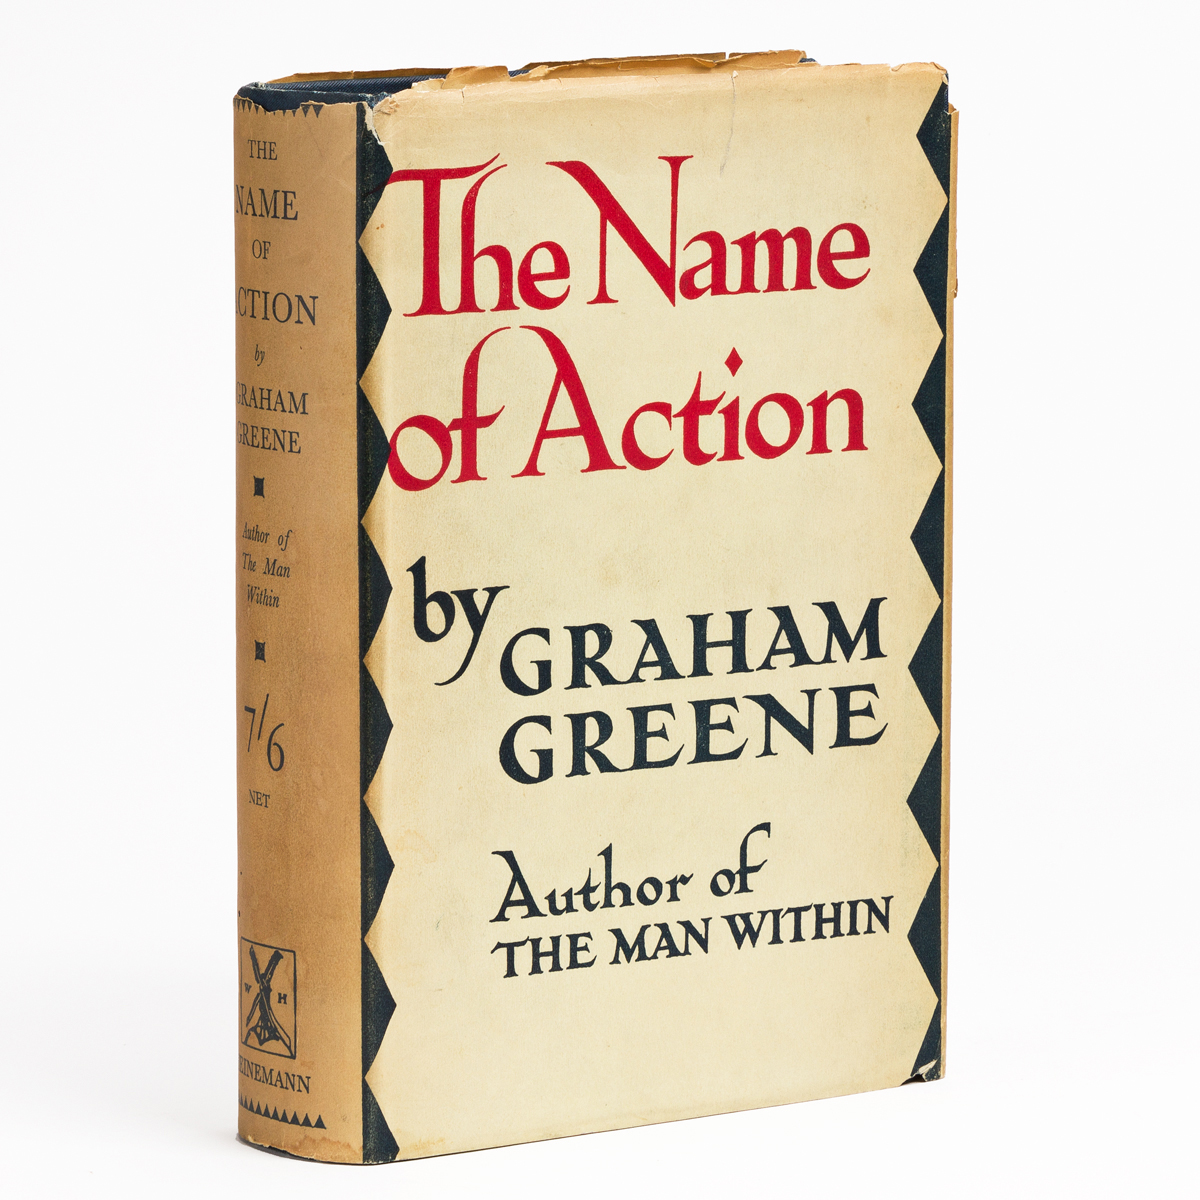 GREENE, GRAHAM. The Name of Action.